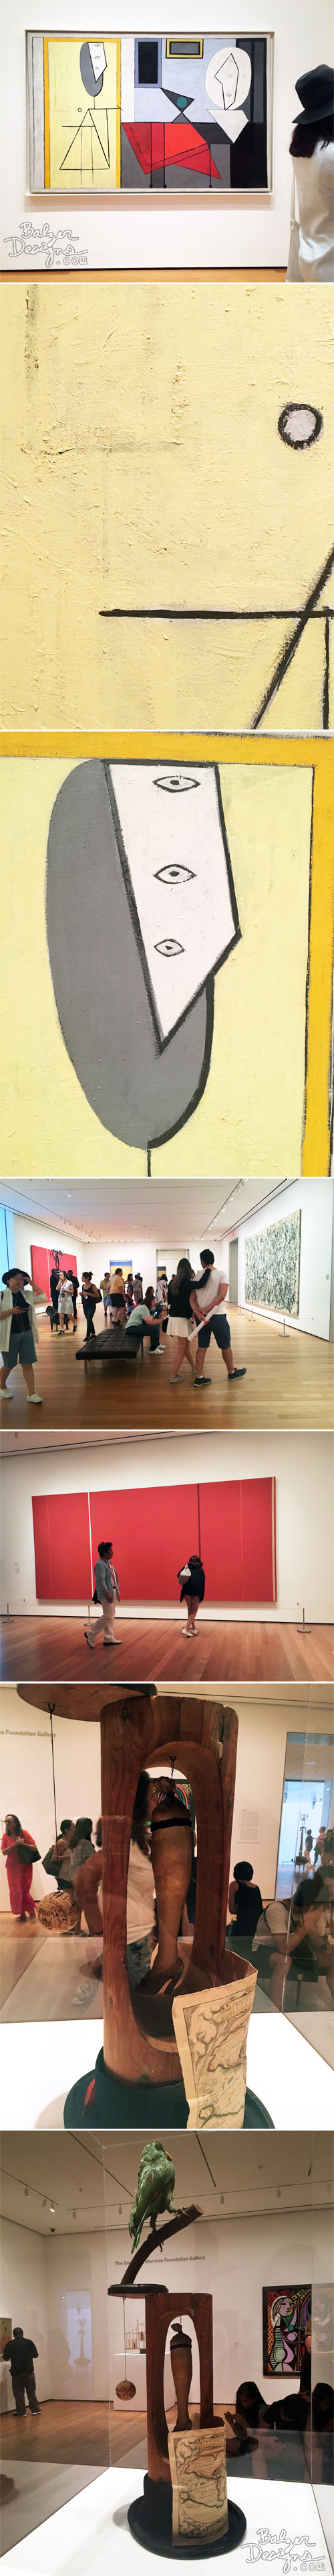 From the Balzer Designs Blog: June Visit to MoMA